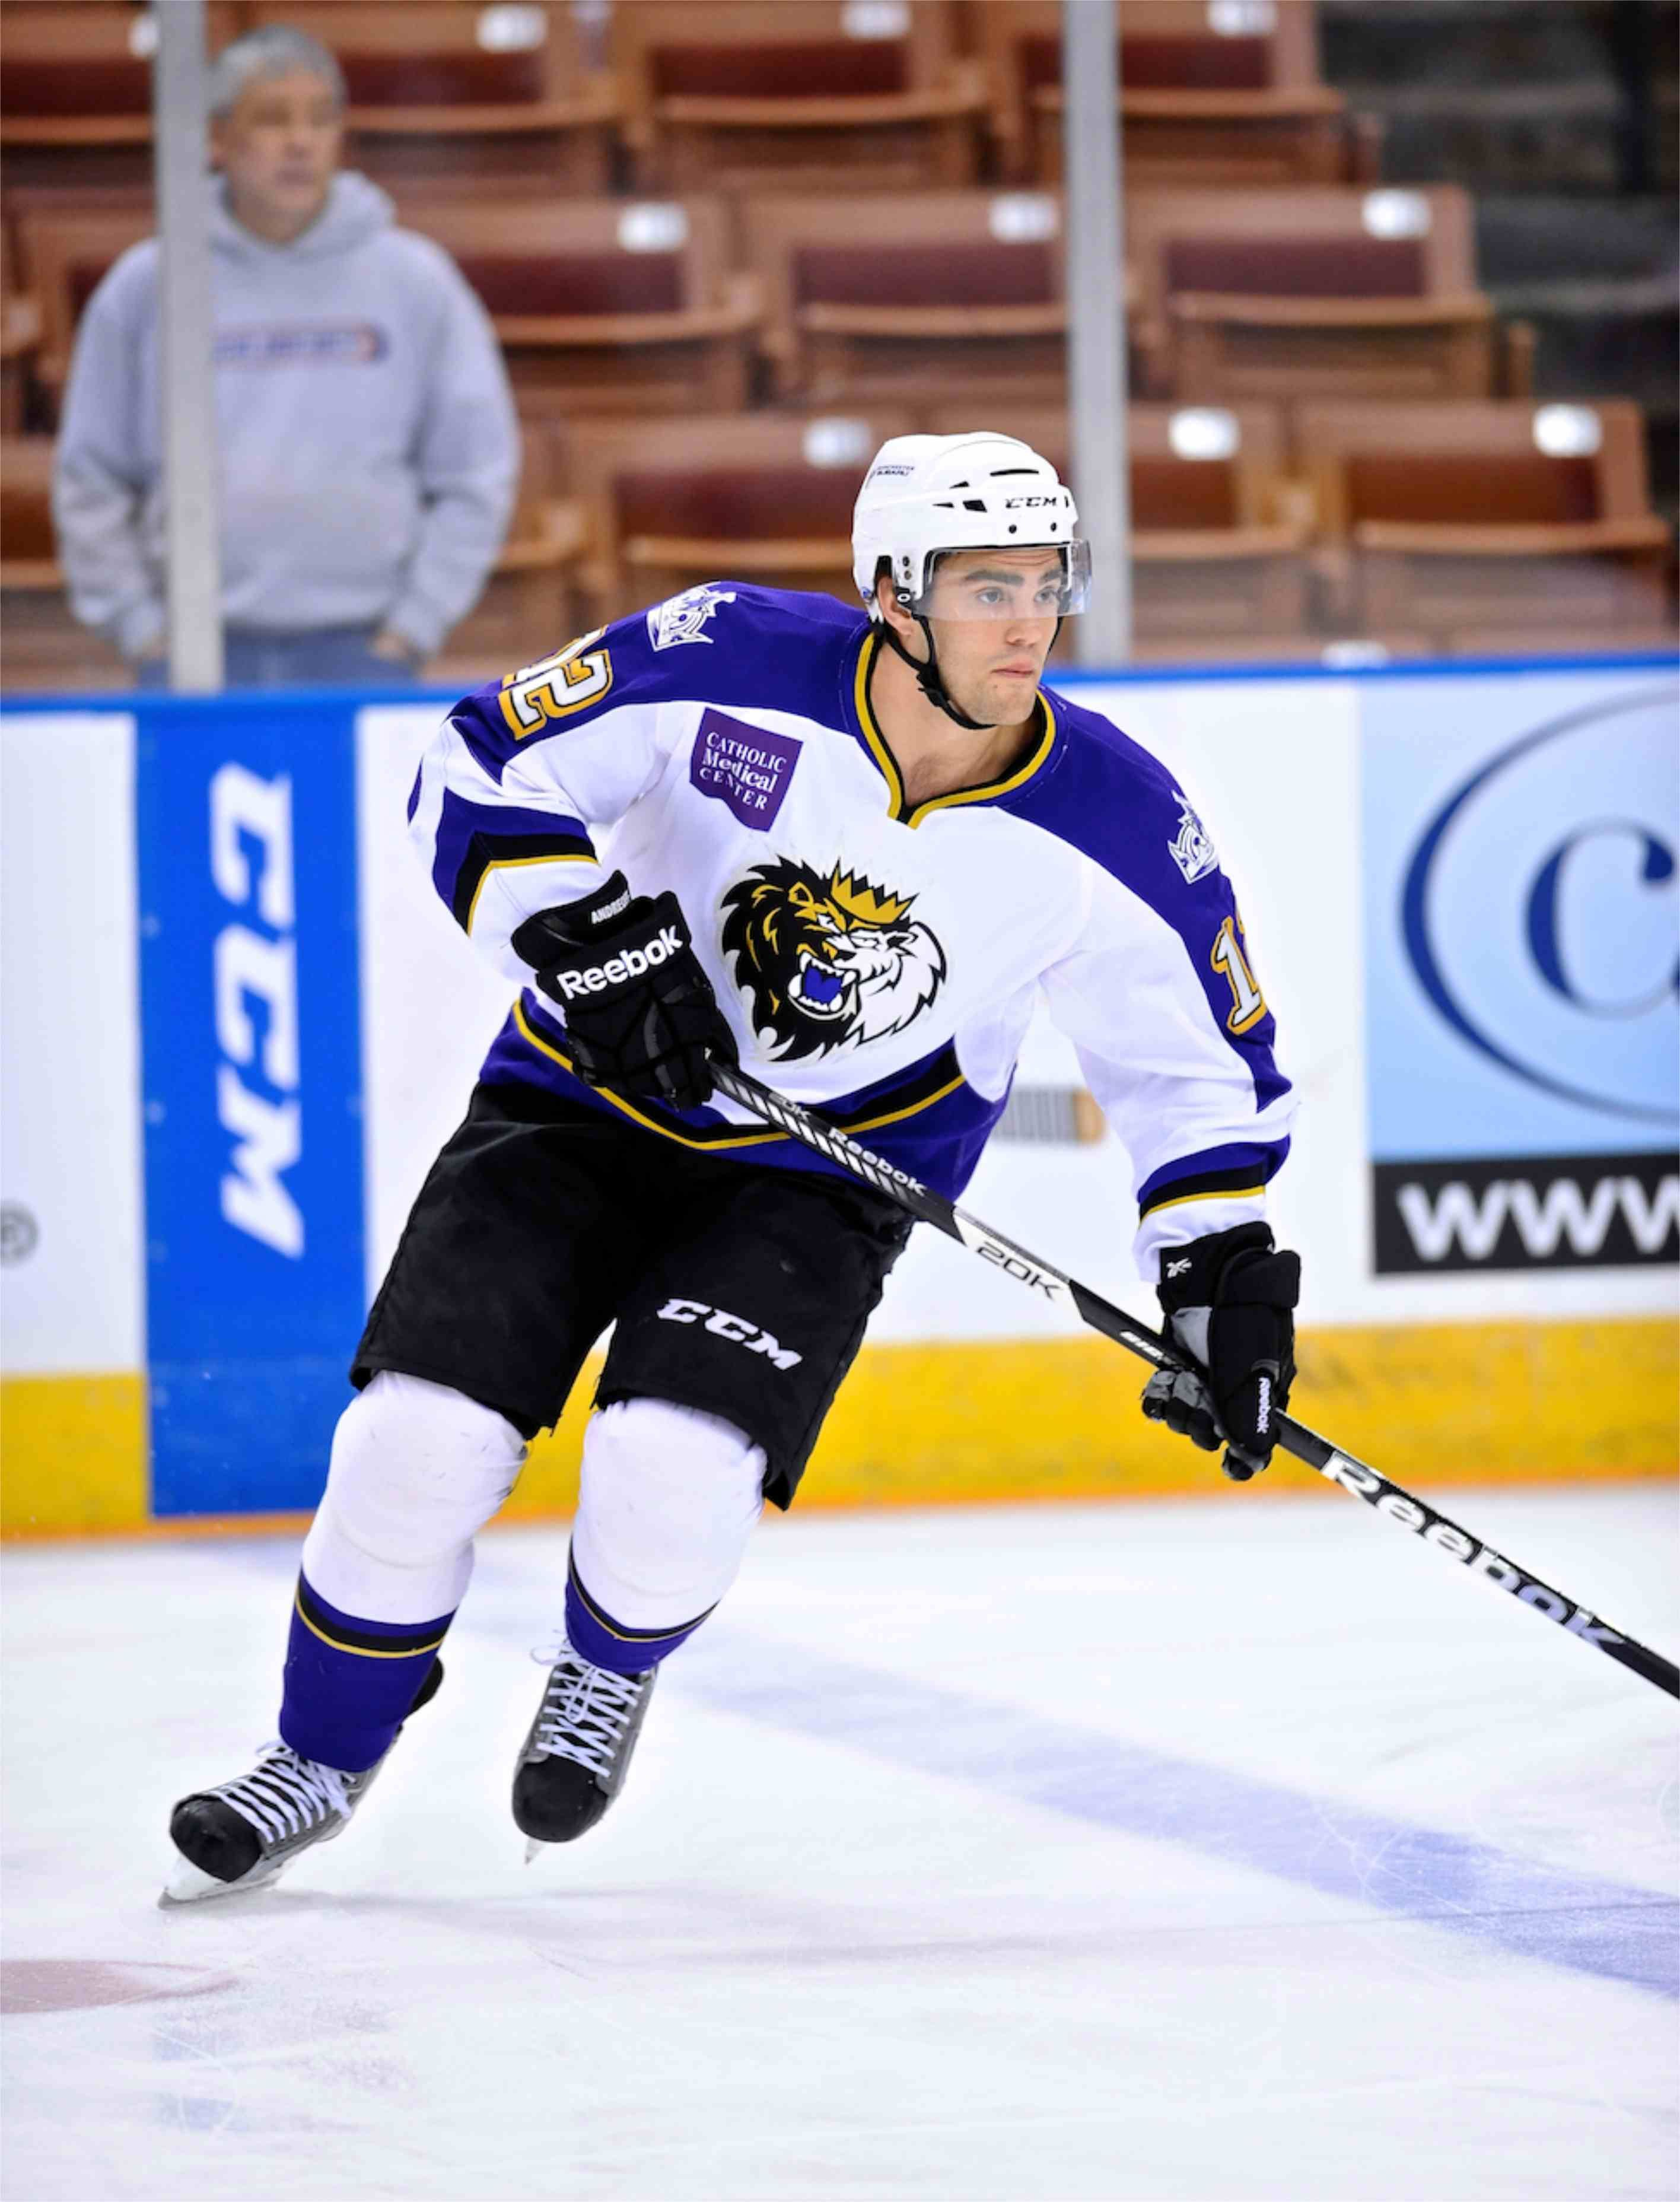 La Kings Lw Prospect Andy Andreoff Didn T Let New Year S Eve Incident Derail His Season Or His Development La Kings Los Angeles Kings Seasons